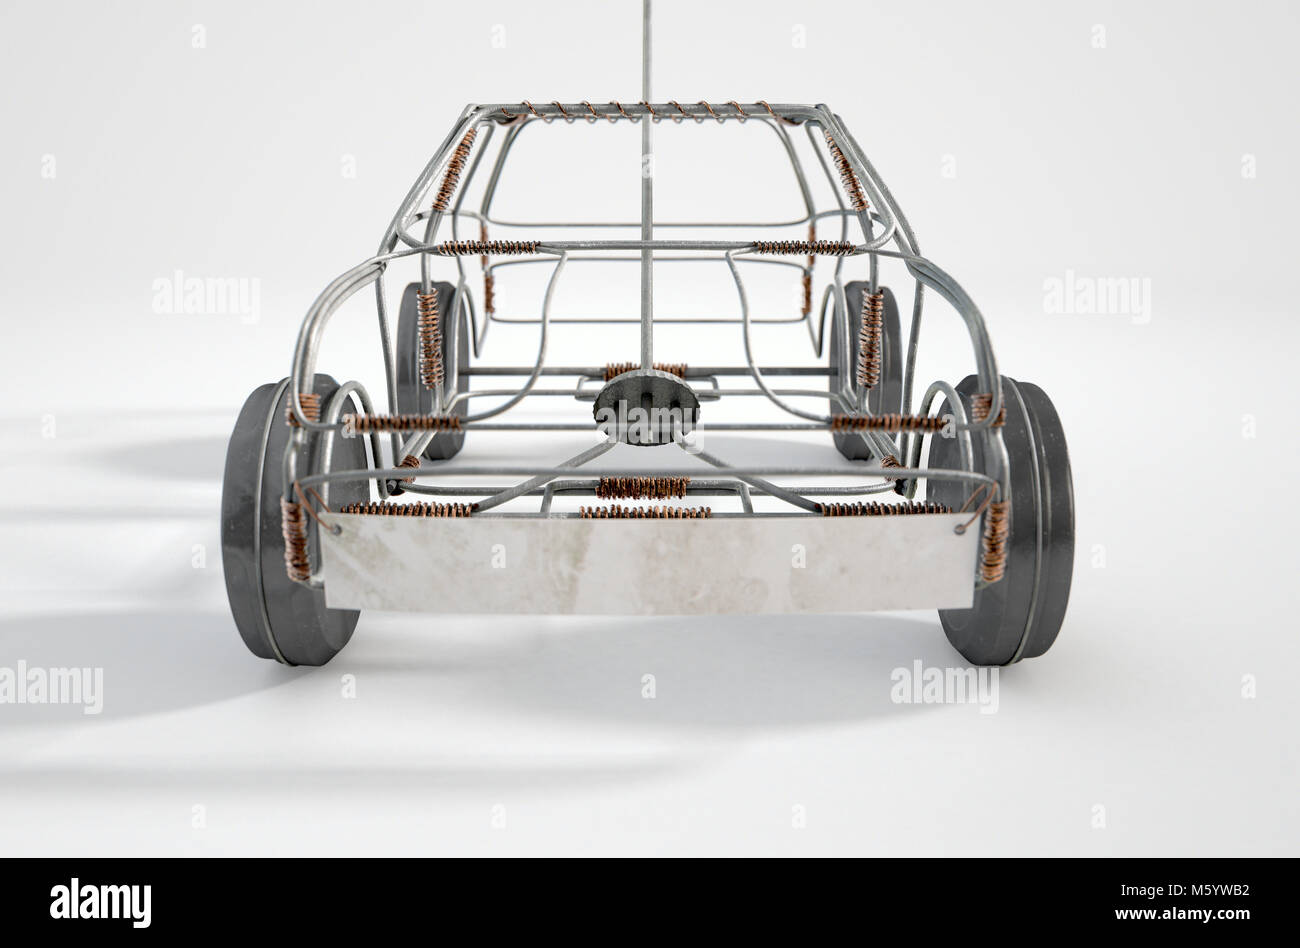 Wire Car Toy Stock Photos & Wire Car Toy Stock Images - Alamy